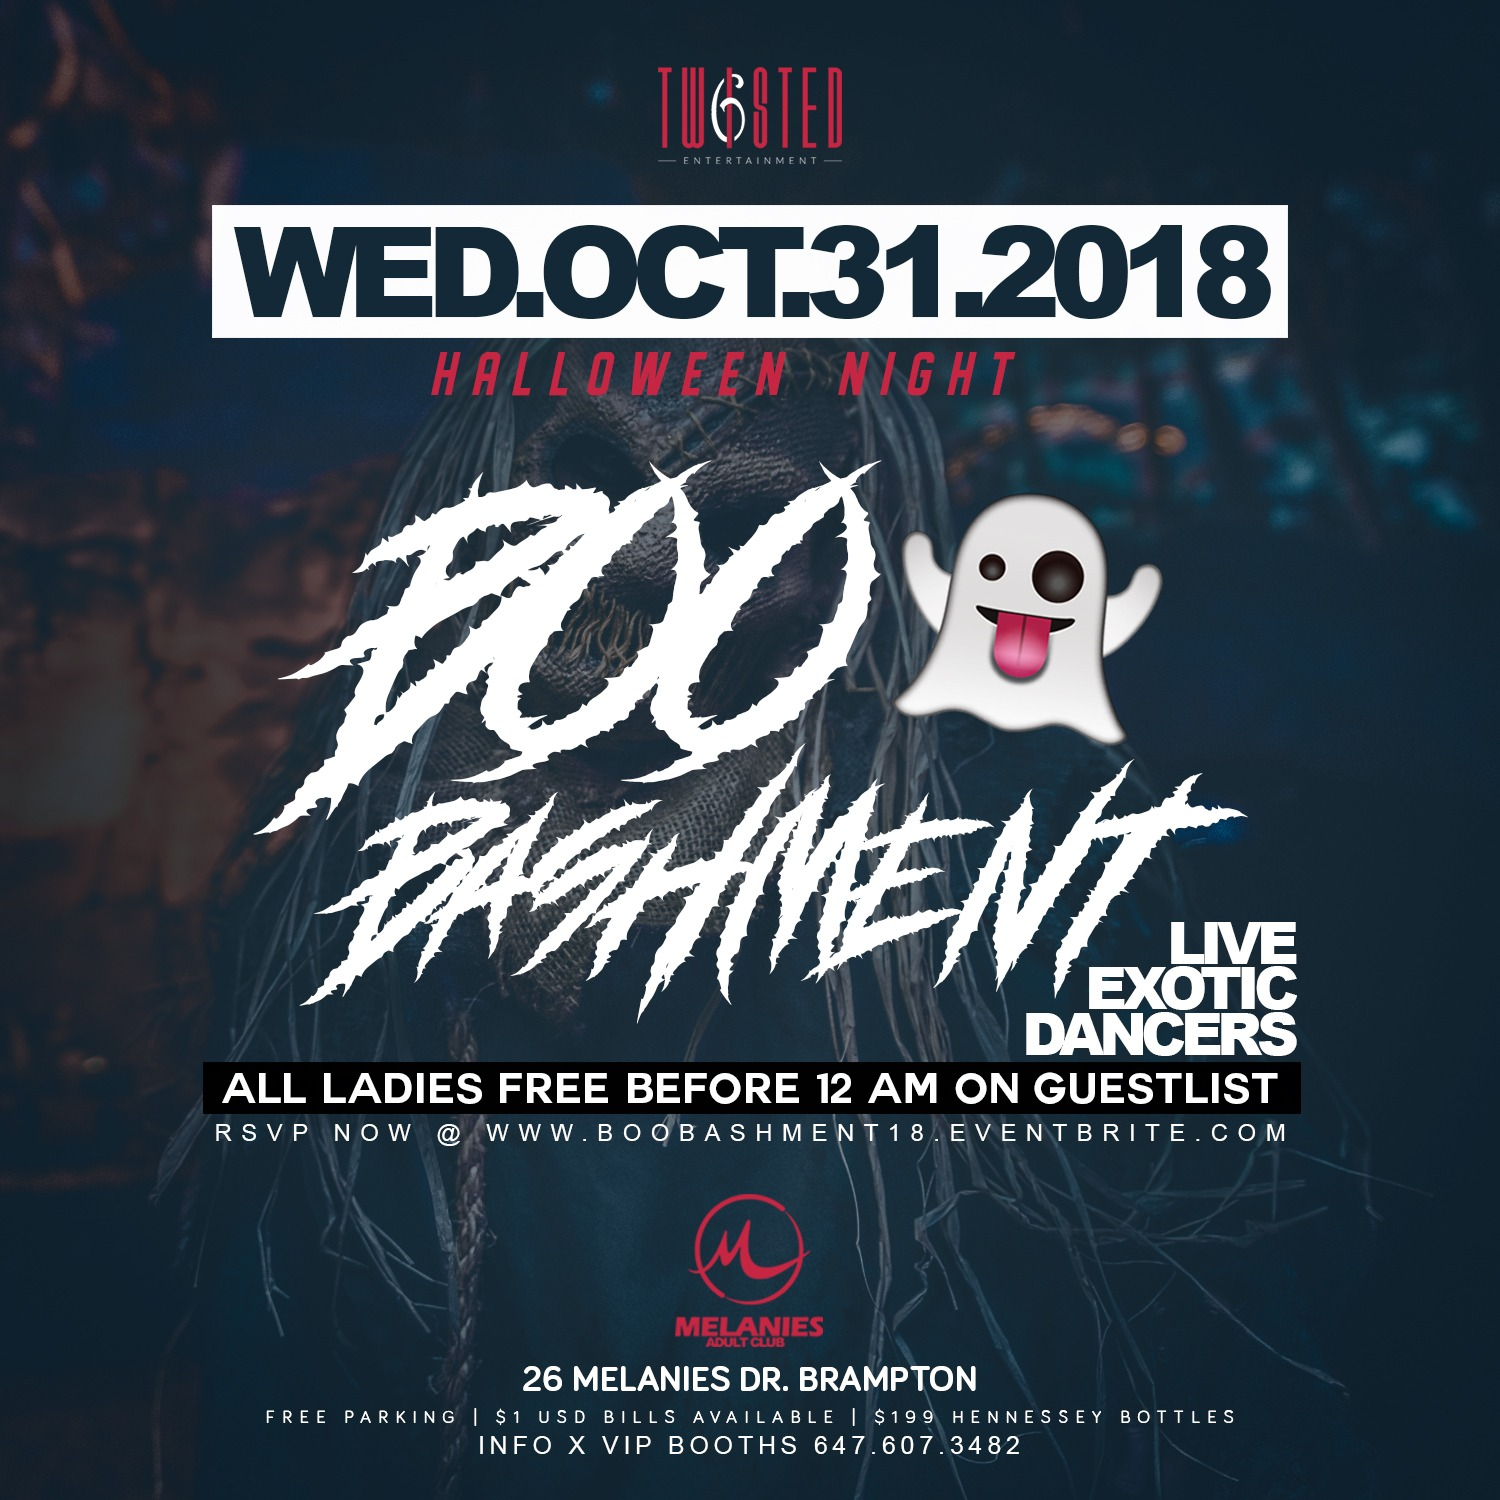 BOO Bashment | Halloween Night | Wed Dec 31st 2018